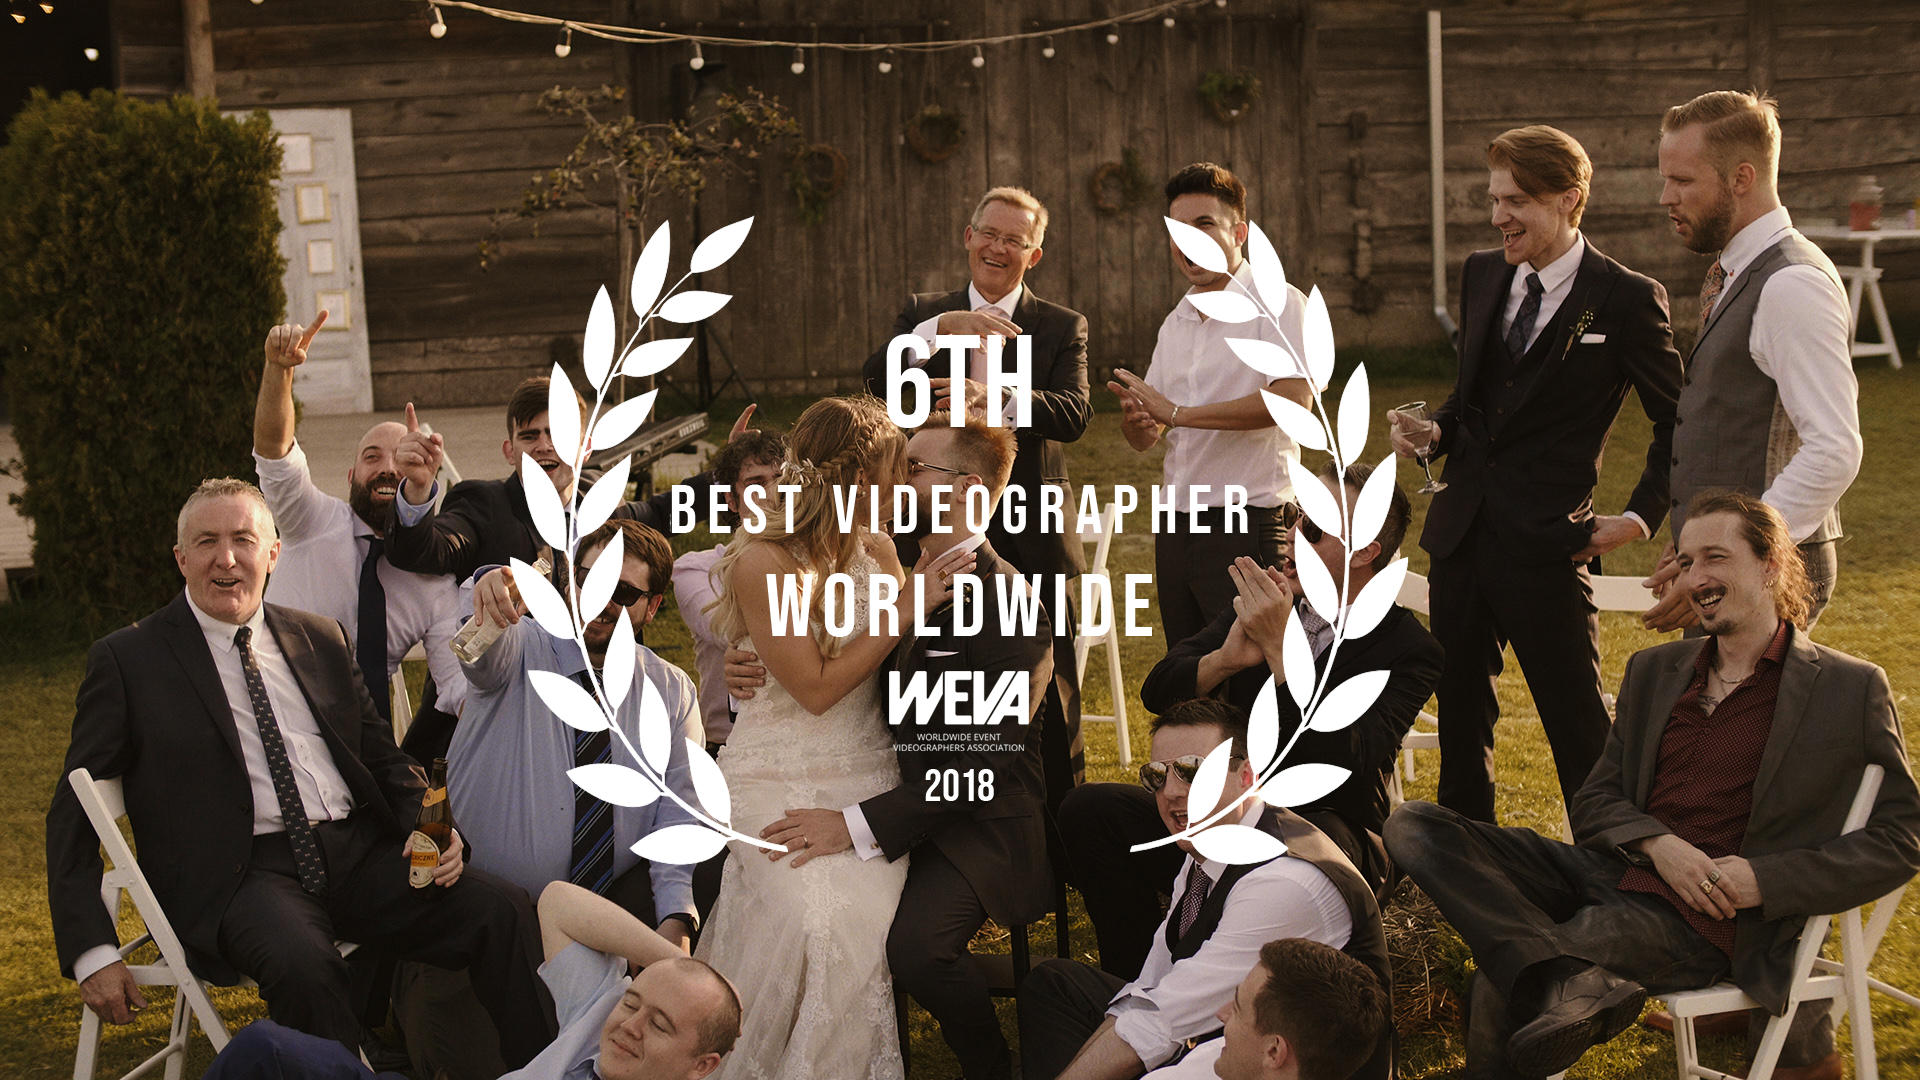 6th best videographer worldwide weva awards 2018 najlepszy filmowiec best polish videographer.jpg